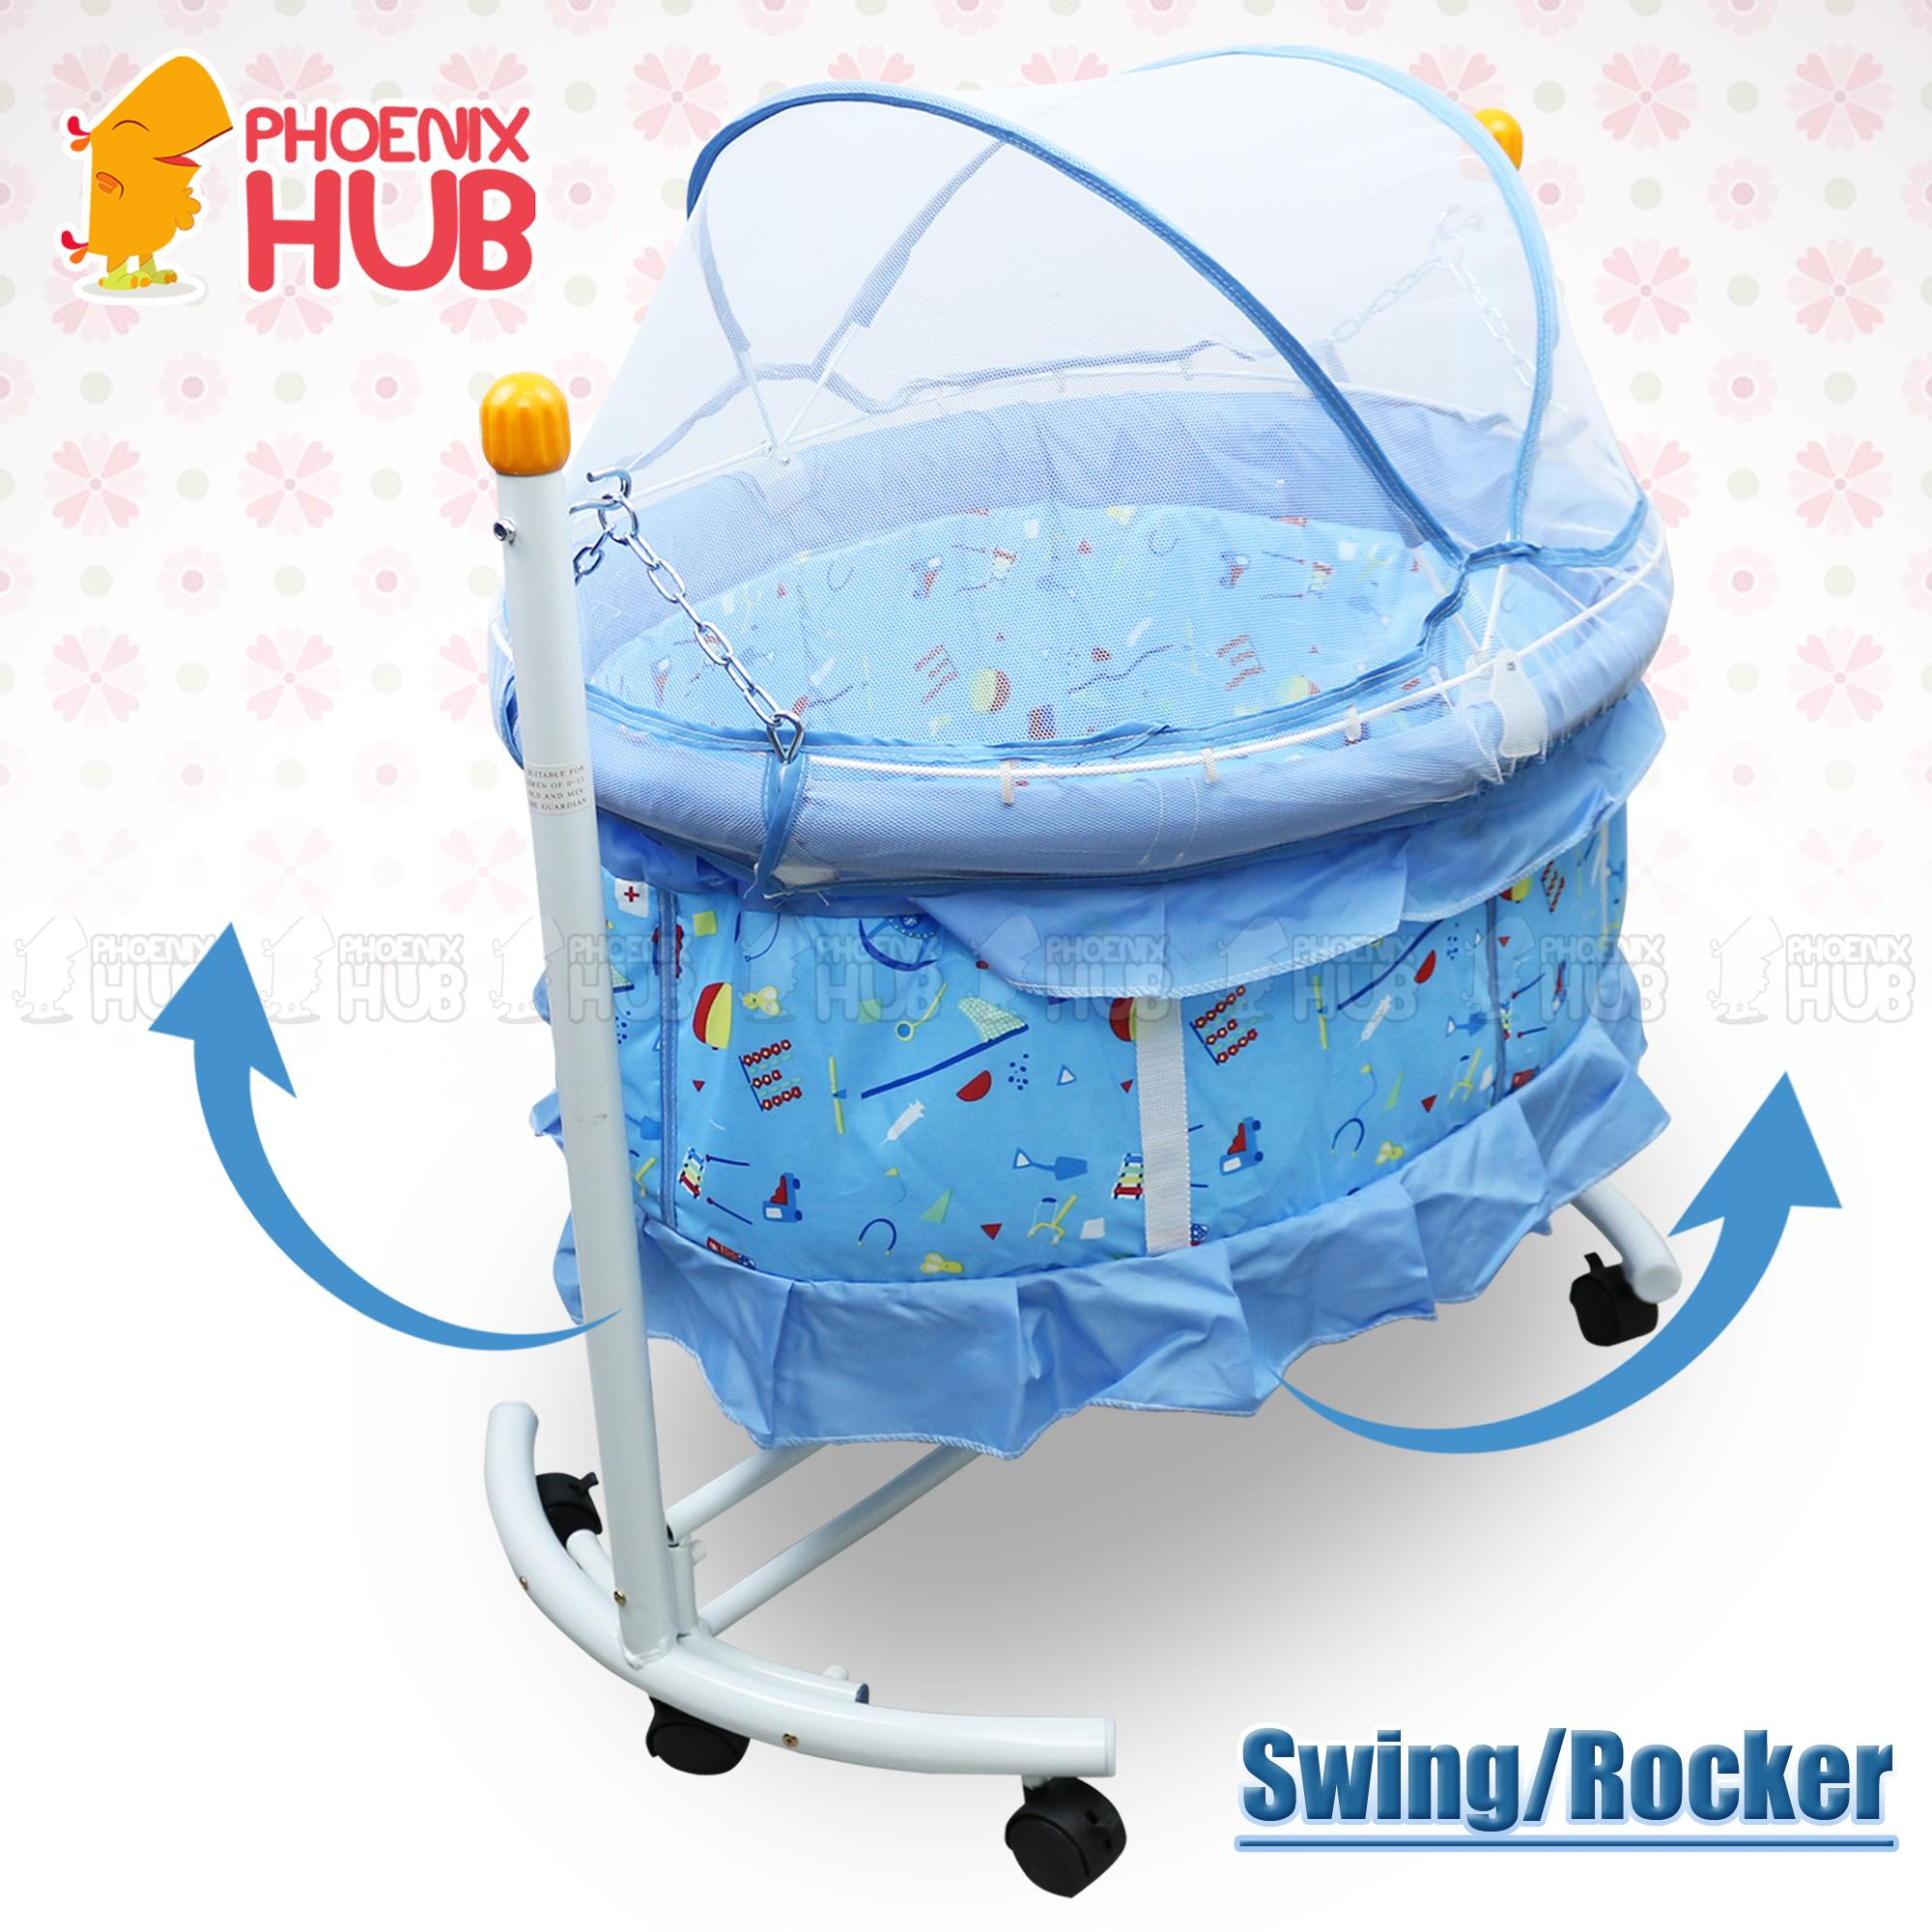 e739b631c0f6 Baby Swings for sale - Swing Strollers online brands